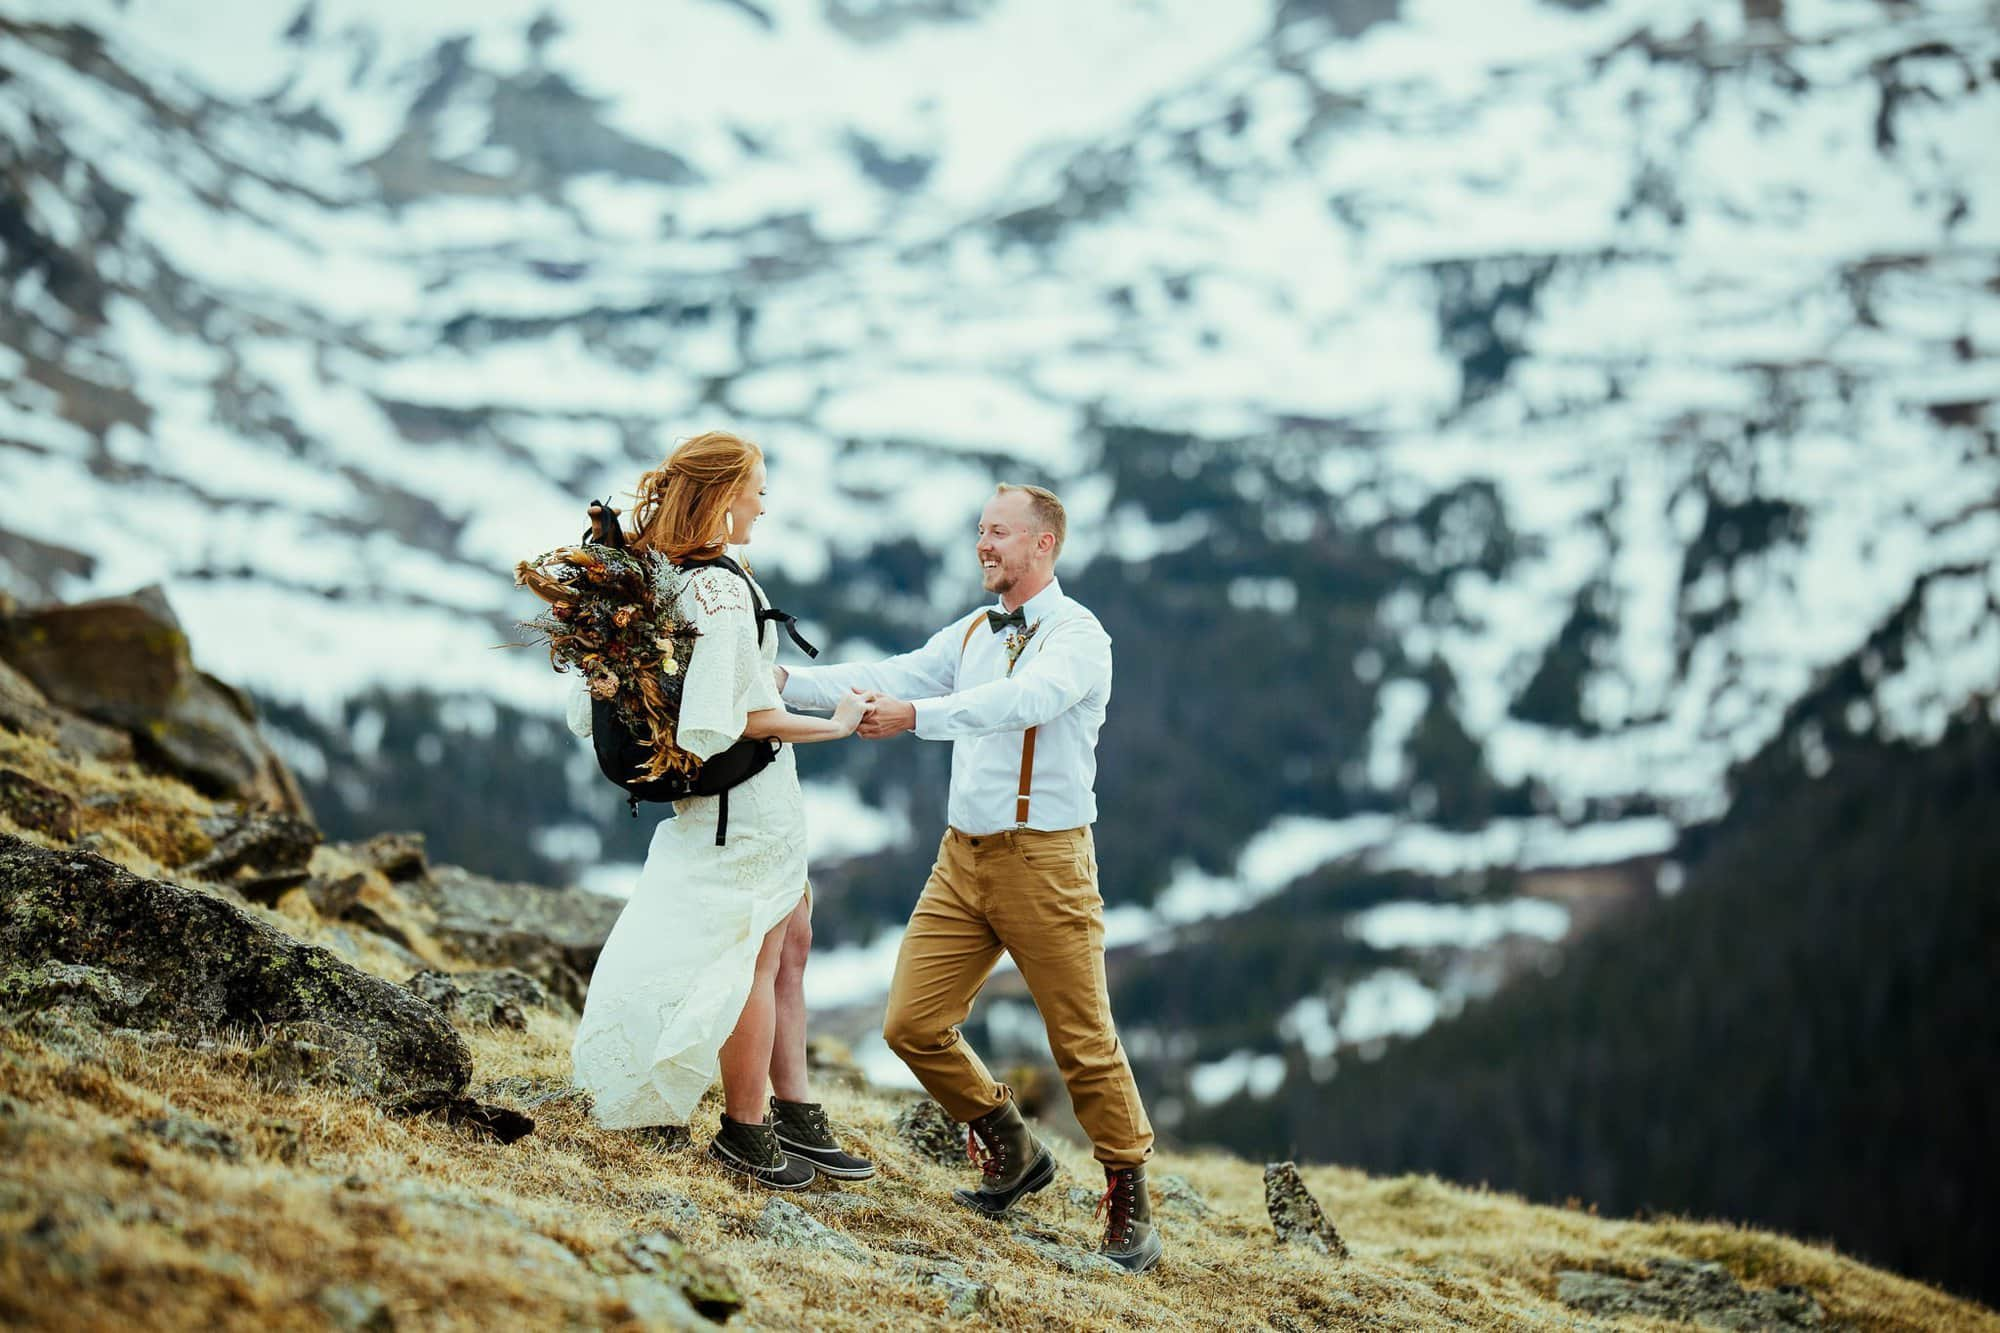 ROCKY MOUNTAIN NATIONAL PARK ADVENTURE|TRAIL RIDGE ROAD SUNSET HIKE|ADVENTURE ELOPEMENT PHOTOGRAPHER|ESTES PARK COLORADO|BRETT + LAURA